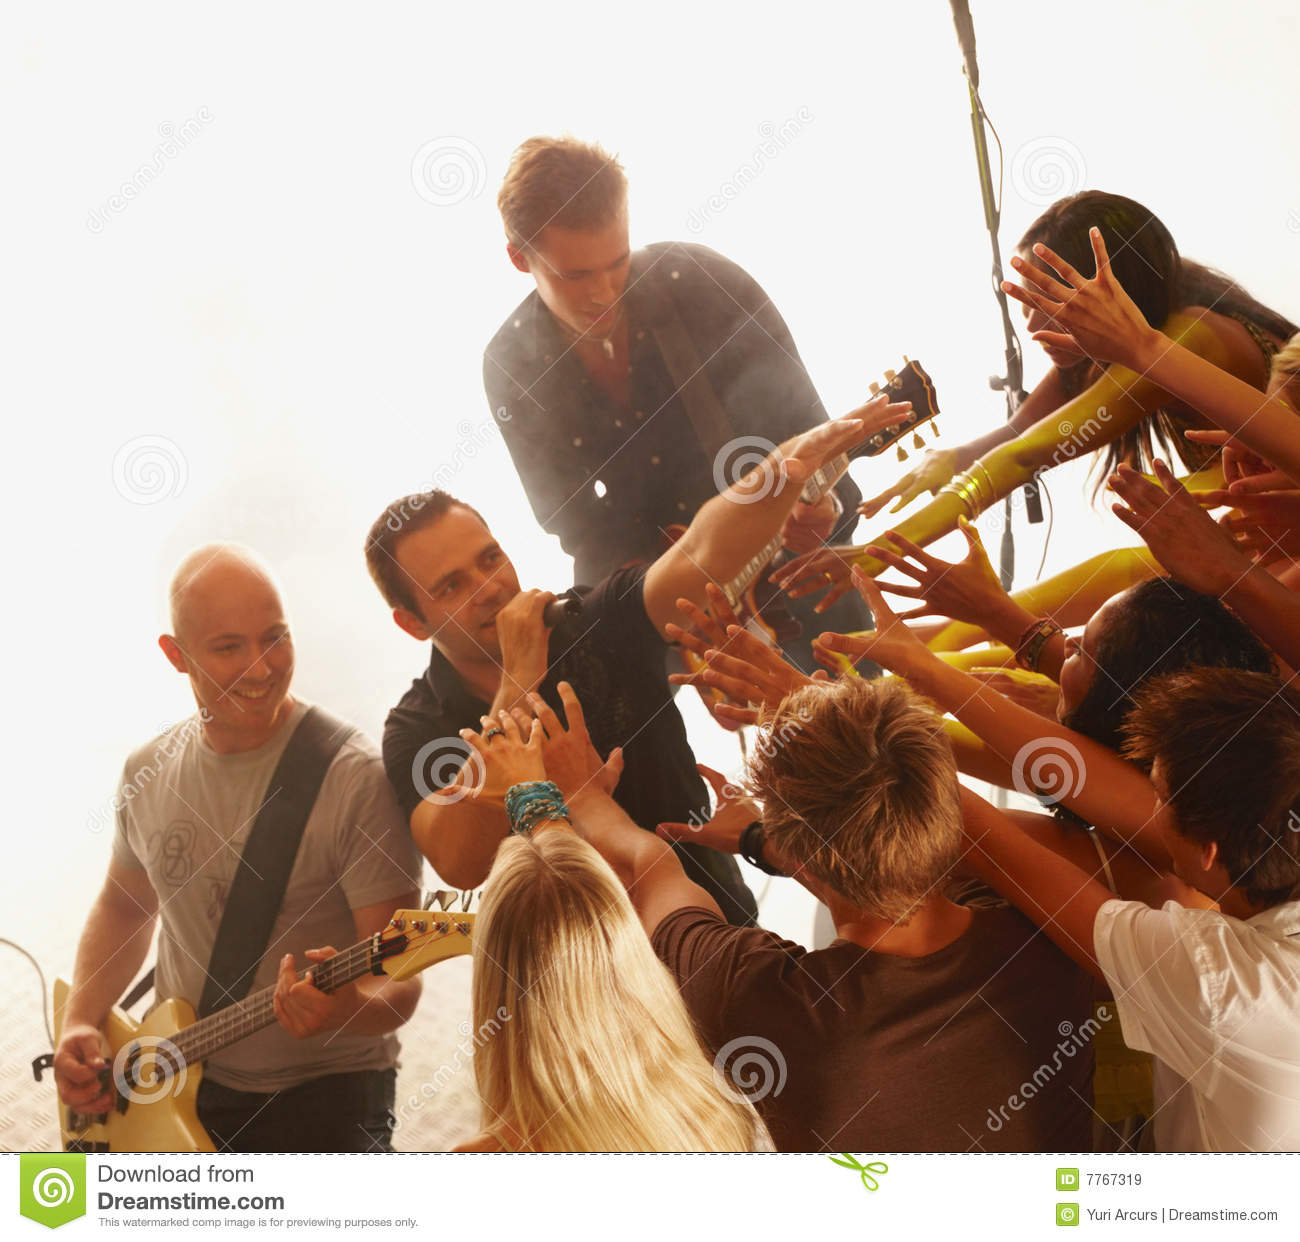 Insane Bands: Royalty Free Stock Images: Crazy Fans Cheering On A Rock